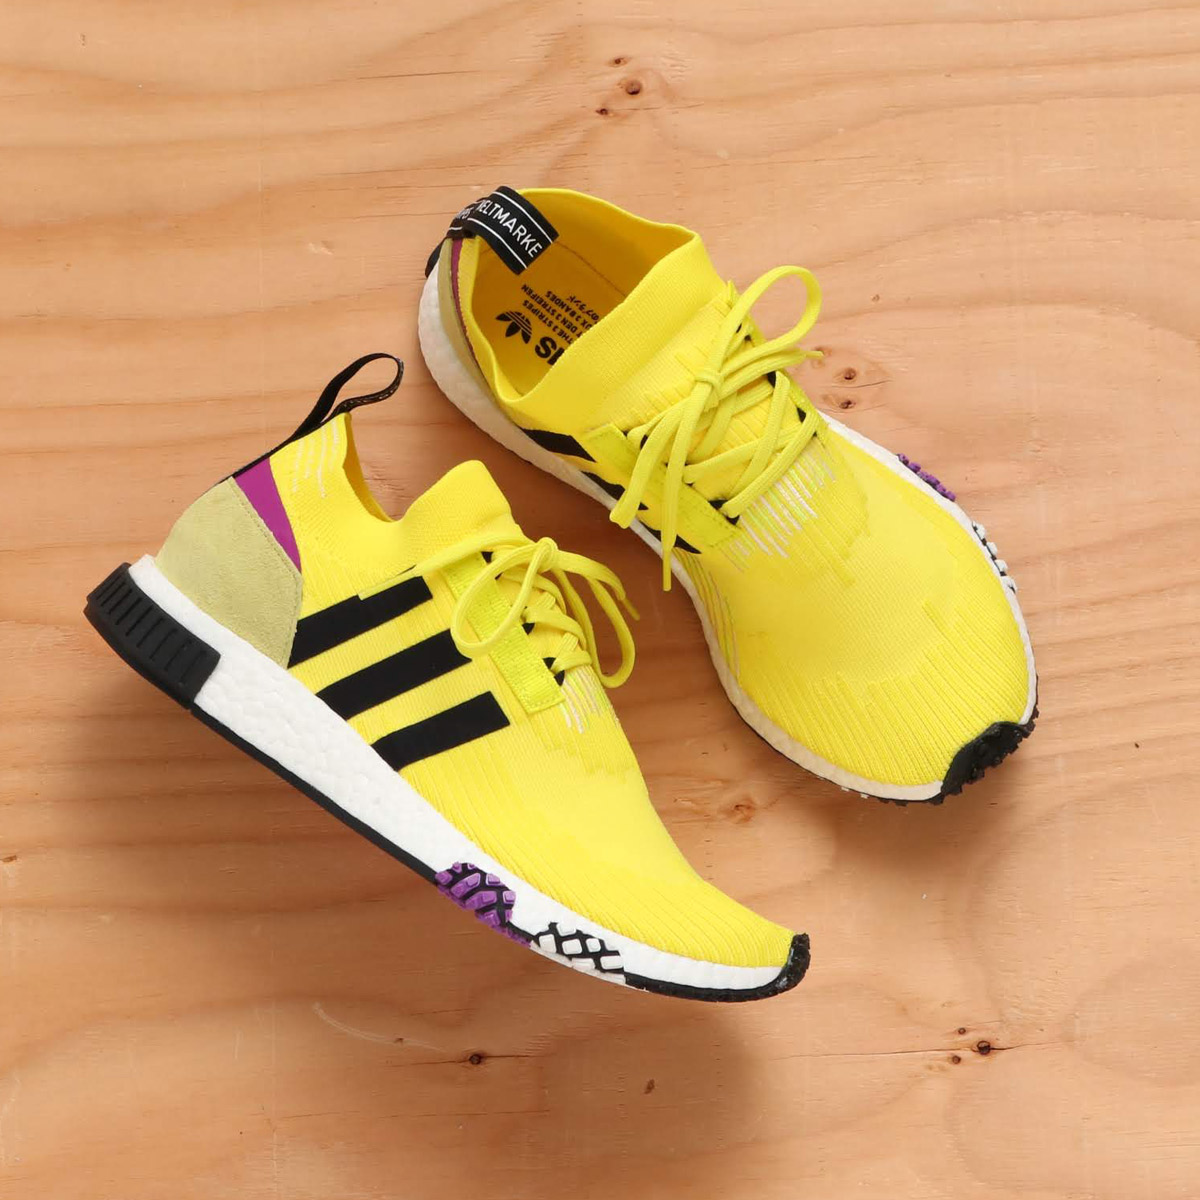 626ee0c39e8 adidas Originals NMD RACER PK (Adidas originals N M D racer PK) solar  yellow   core black   shock purple F16 18FW-I